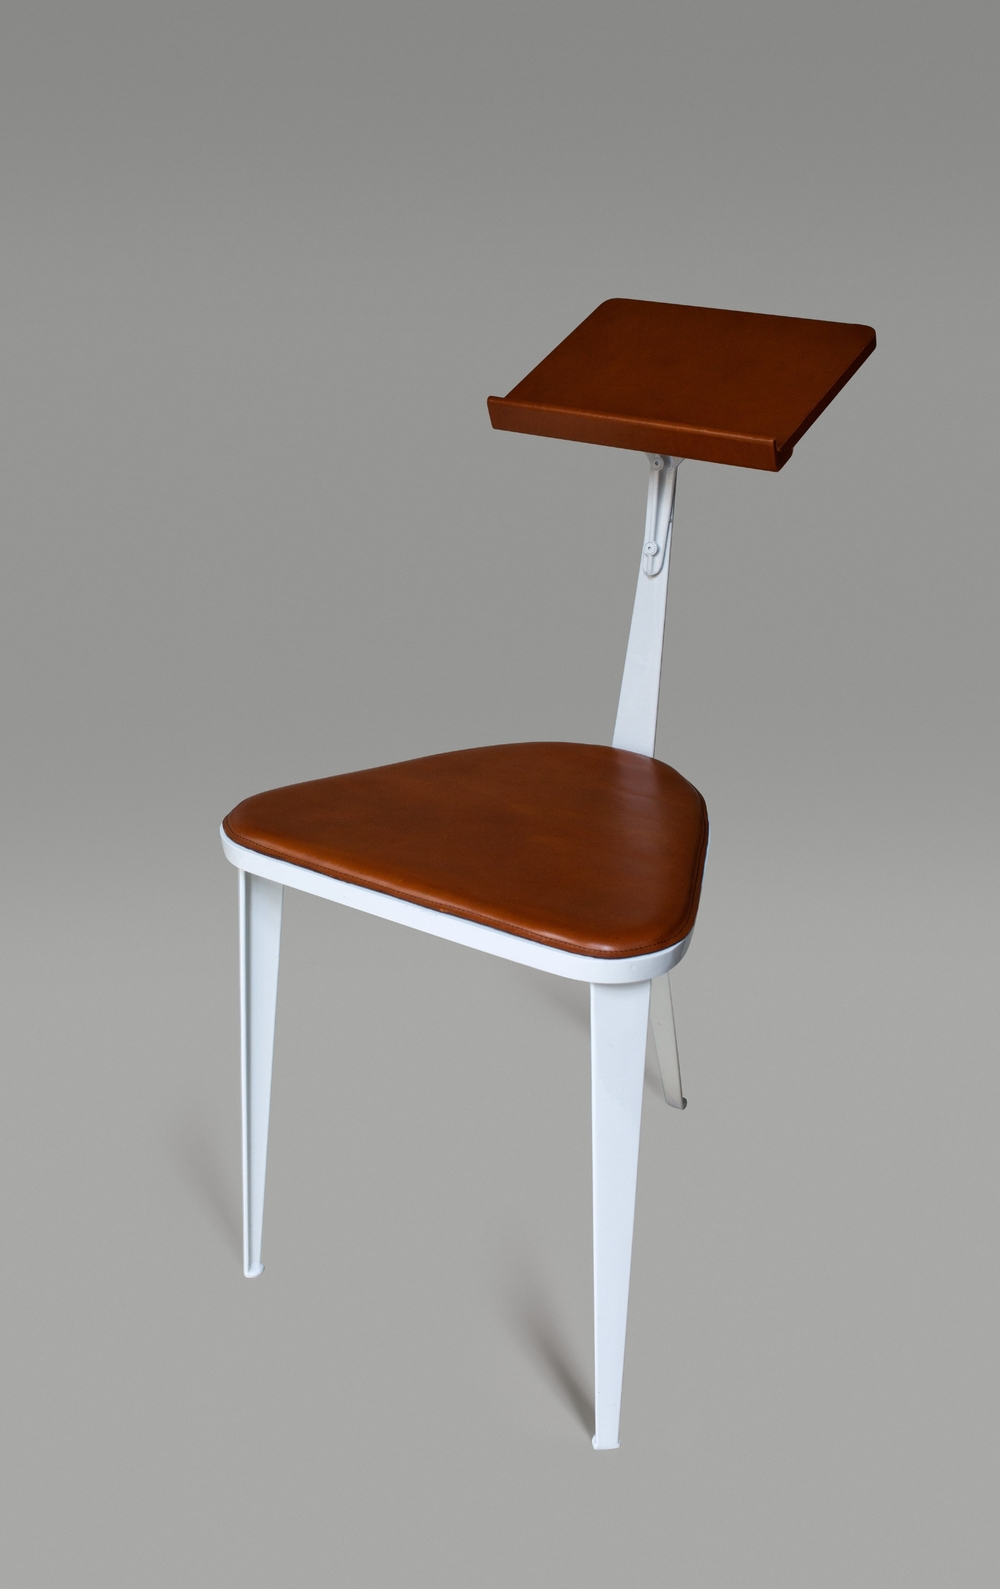 51_Bill_Amberg_Studio_Chair_Carl_Glover.jpg